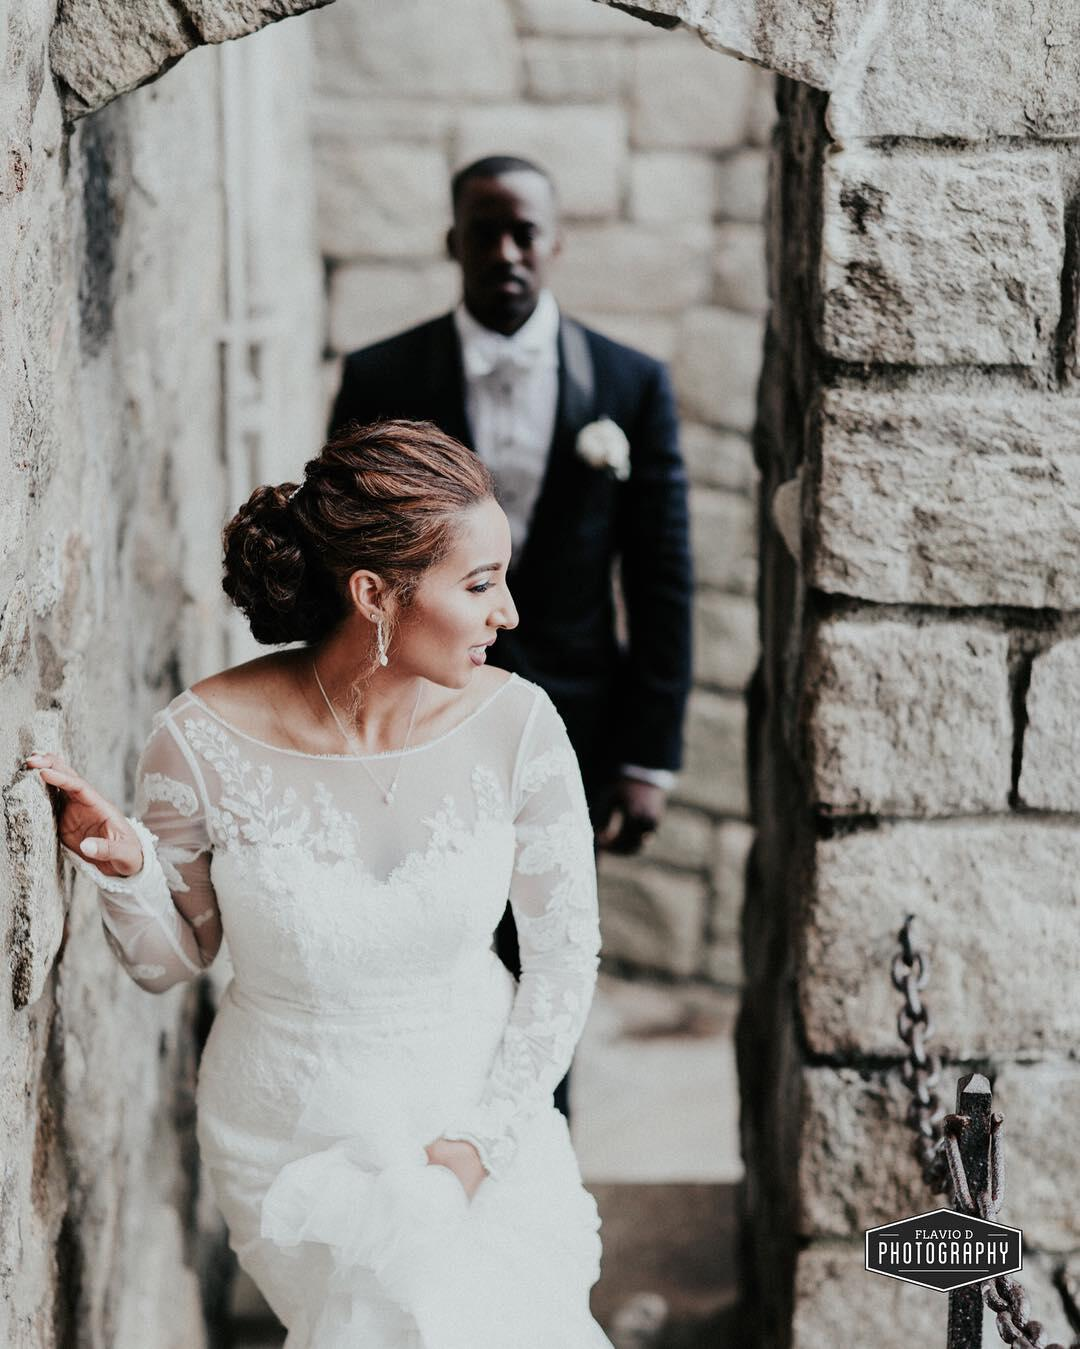 Bride walking towards the screen with groom following her in the background